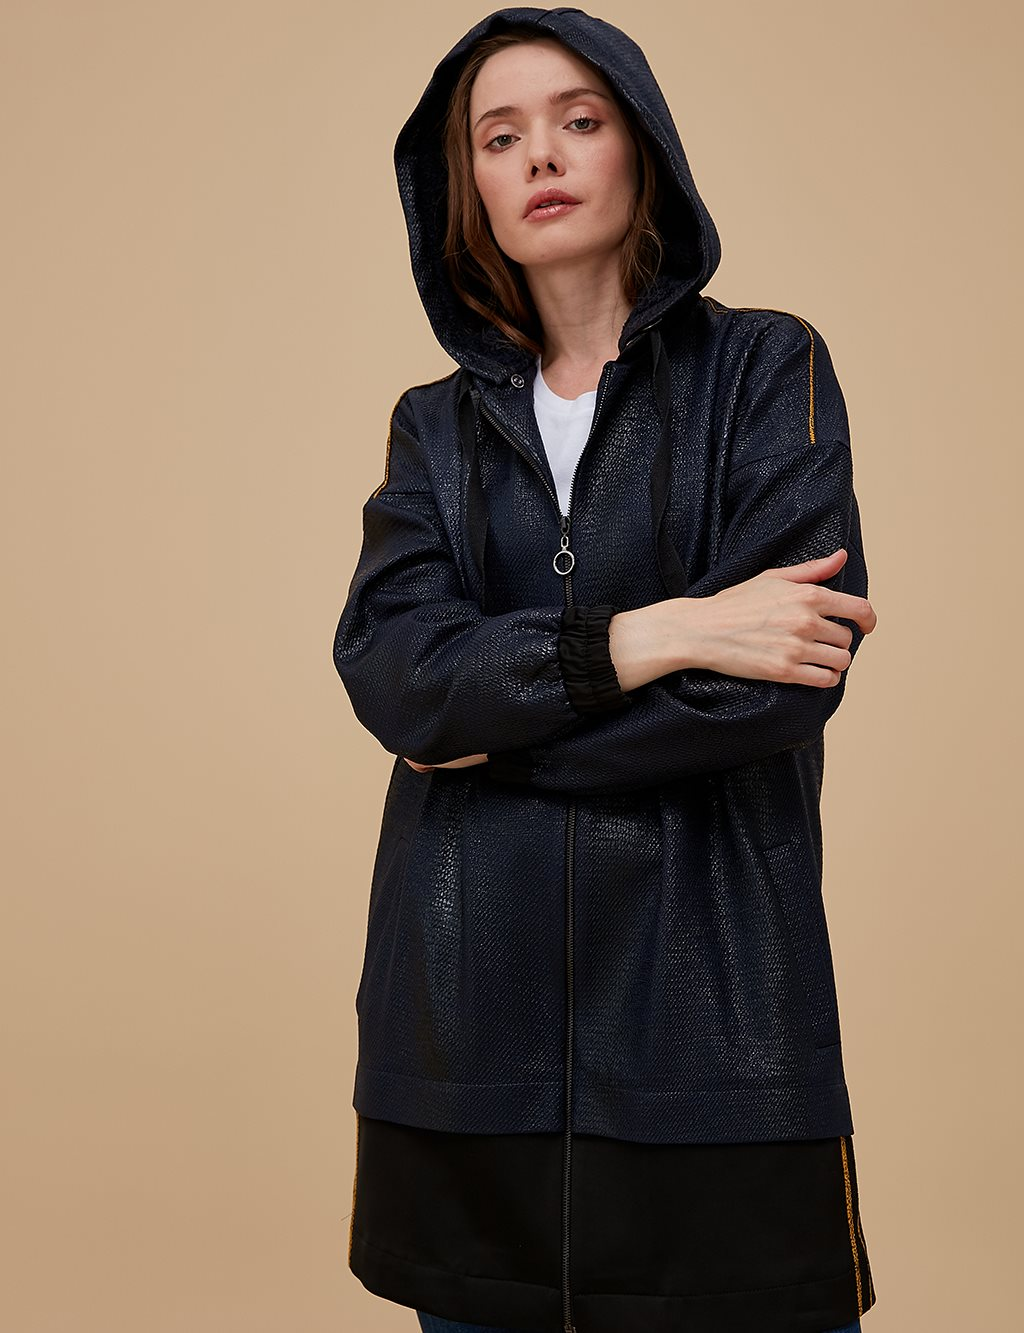 Sport Jacket with Hood A9 13120 Navy